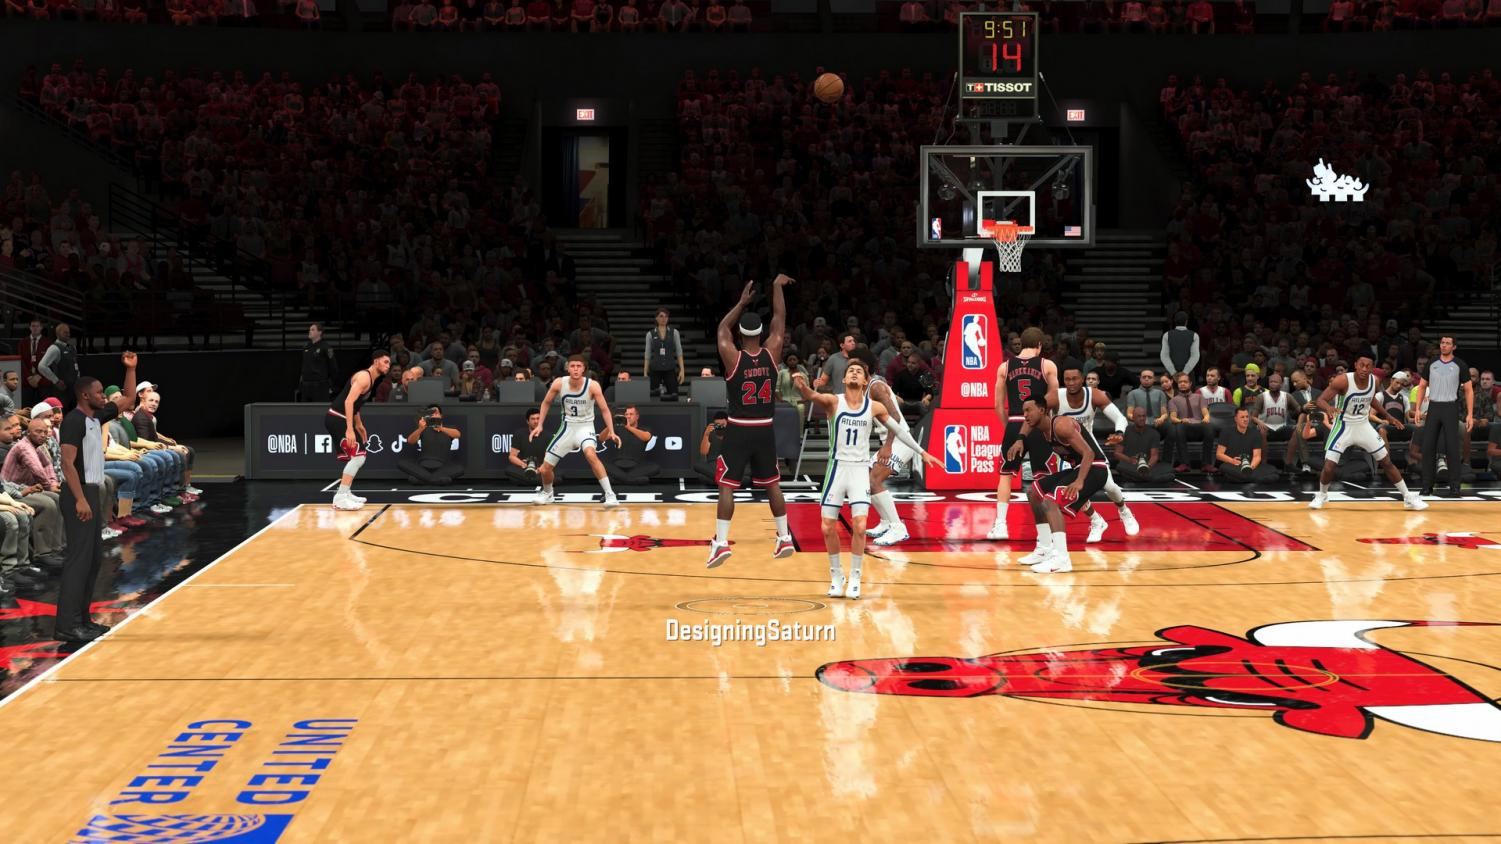 Jay'len Collins making a free-throw in NBA 2K21.